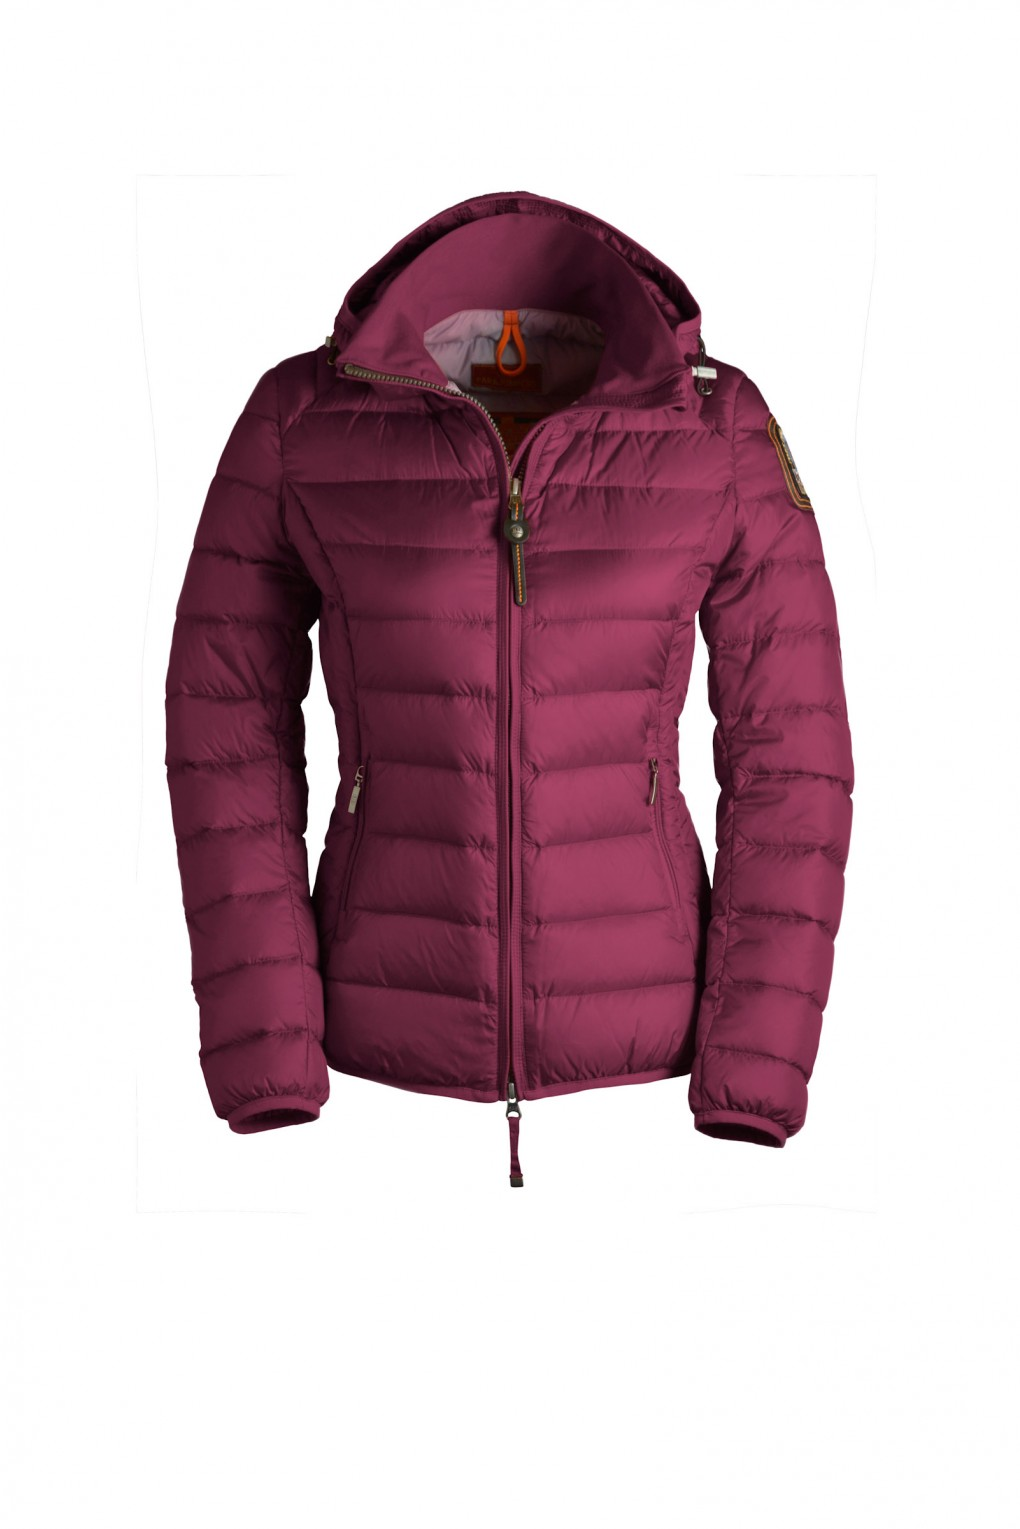 parajumpers JULIET6 woman outerwear Fuchsia